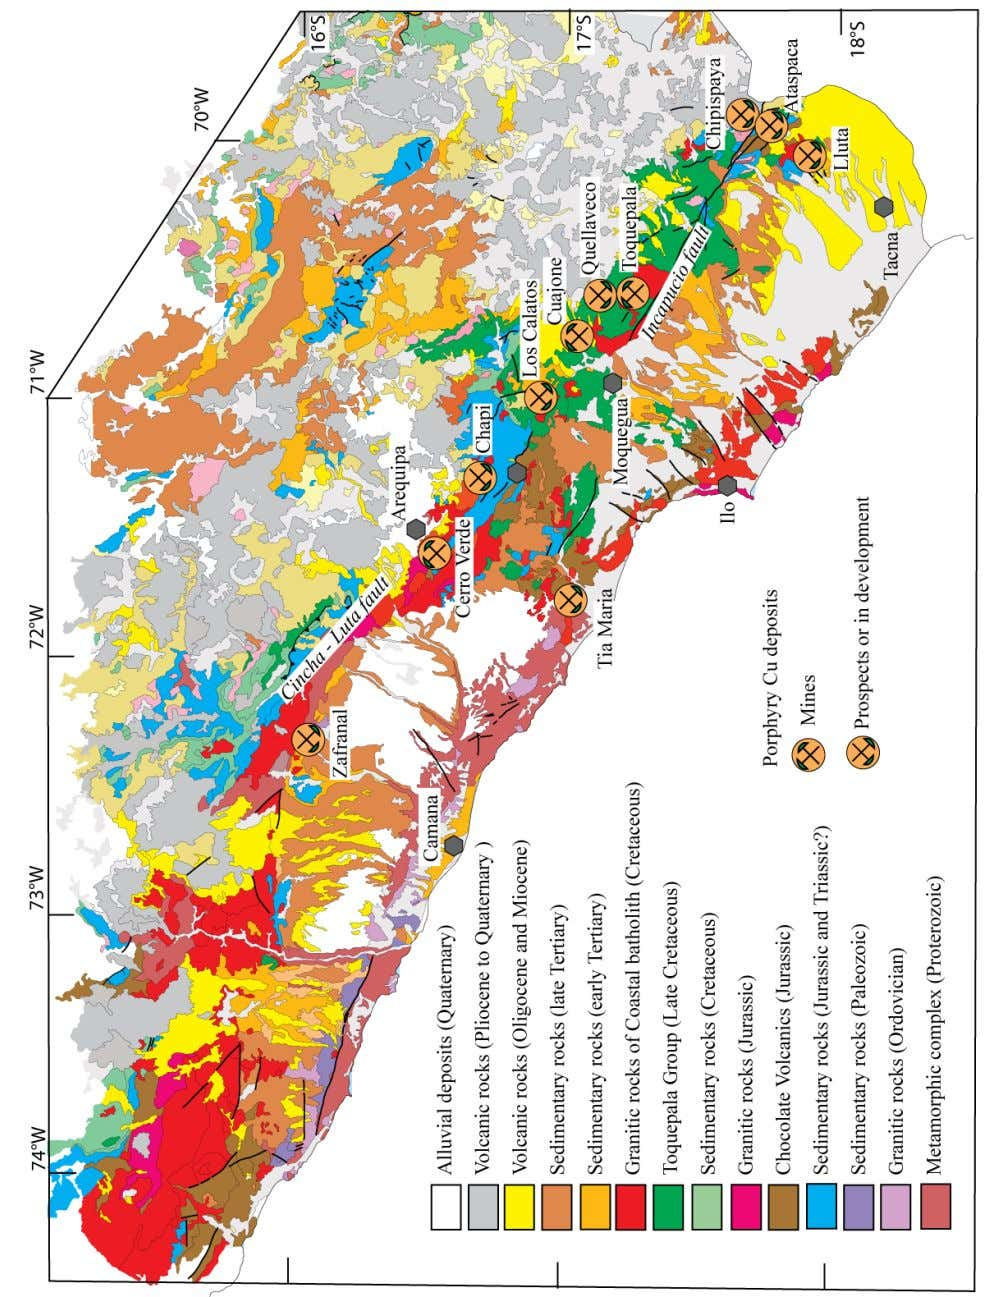 Figure 2. Simplified geologic map of southern Perú showing distribution of porphyry Cu mines and